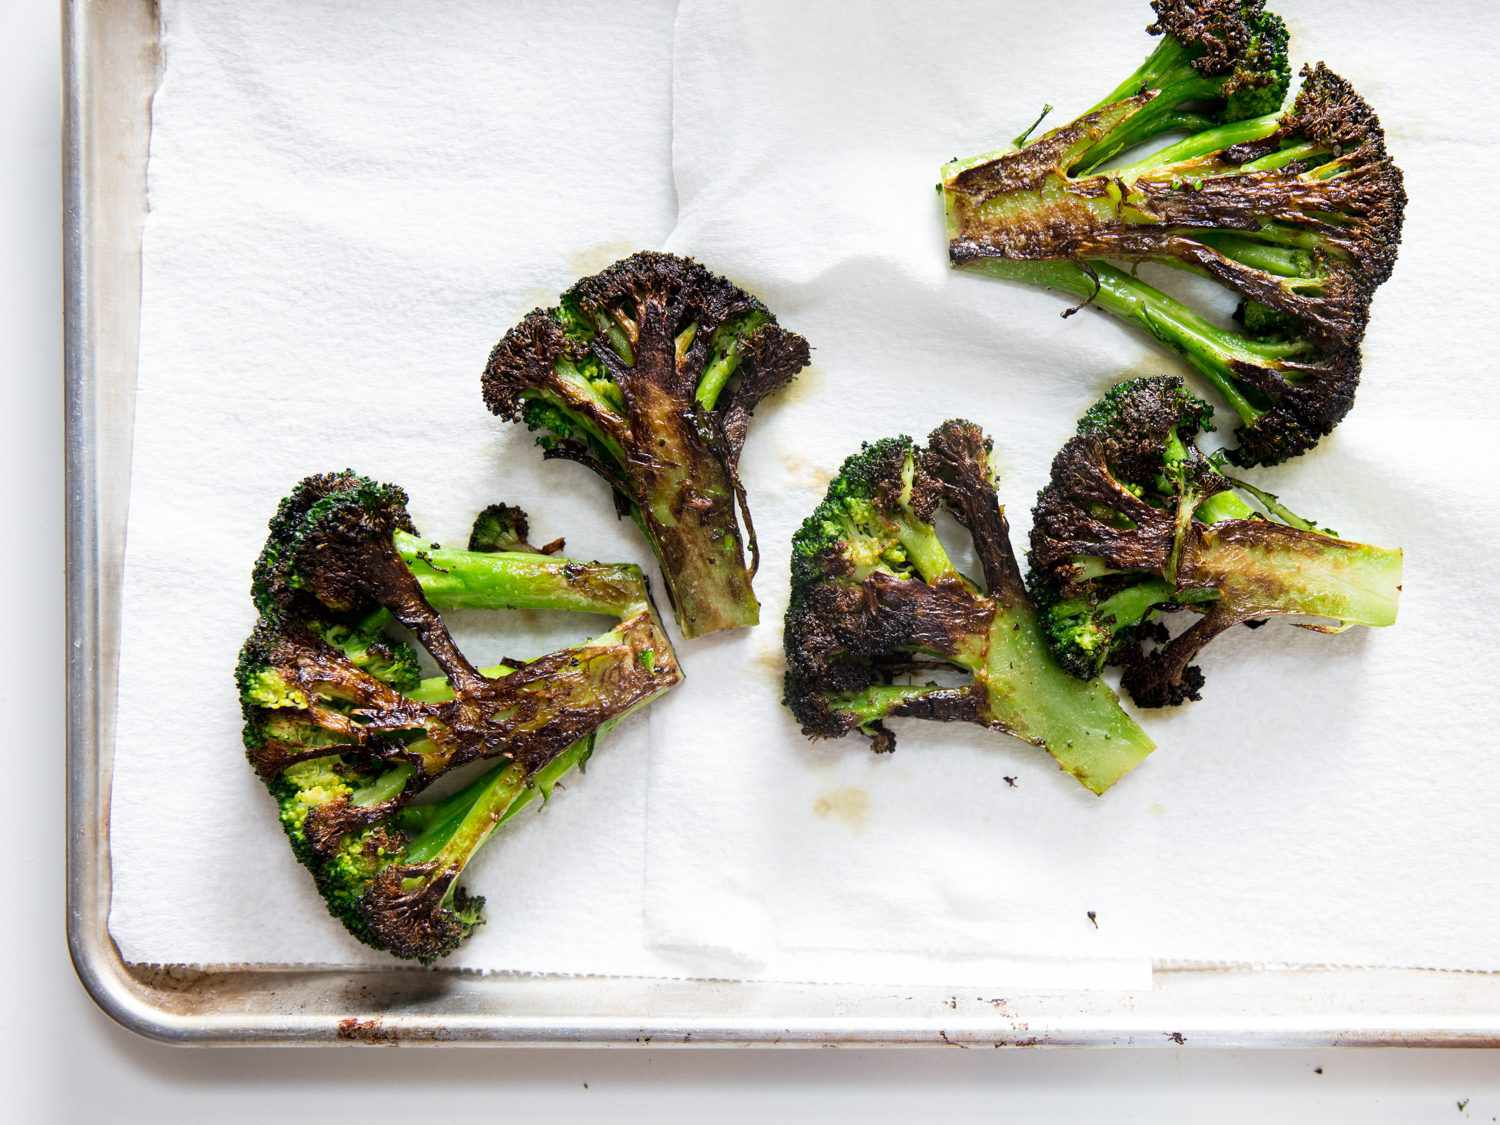 Charred broccoli pieces on a paper towel–lined baking sheet.